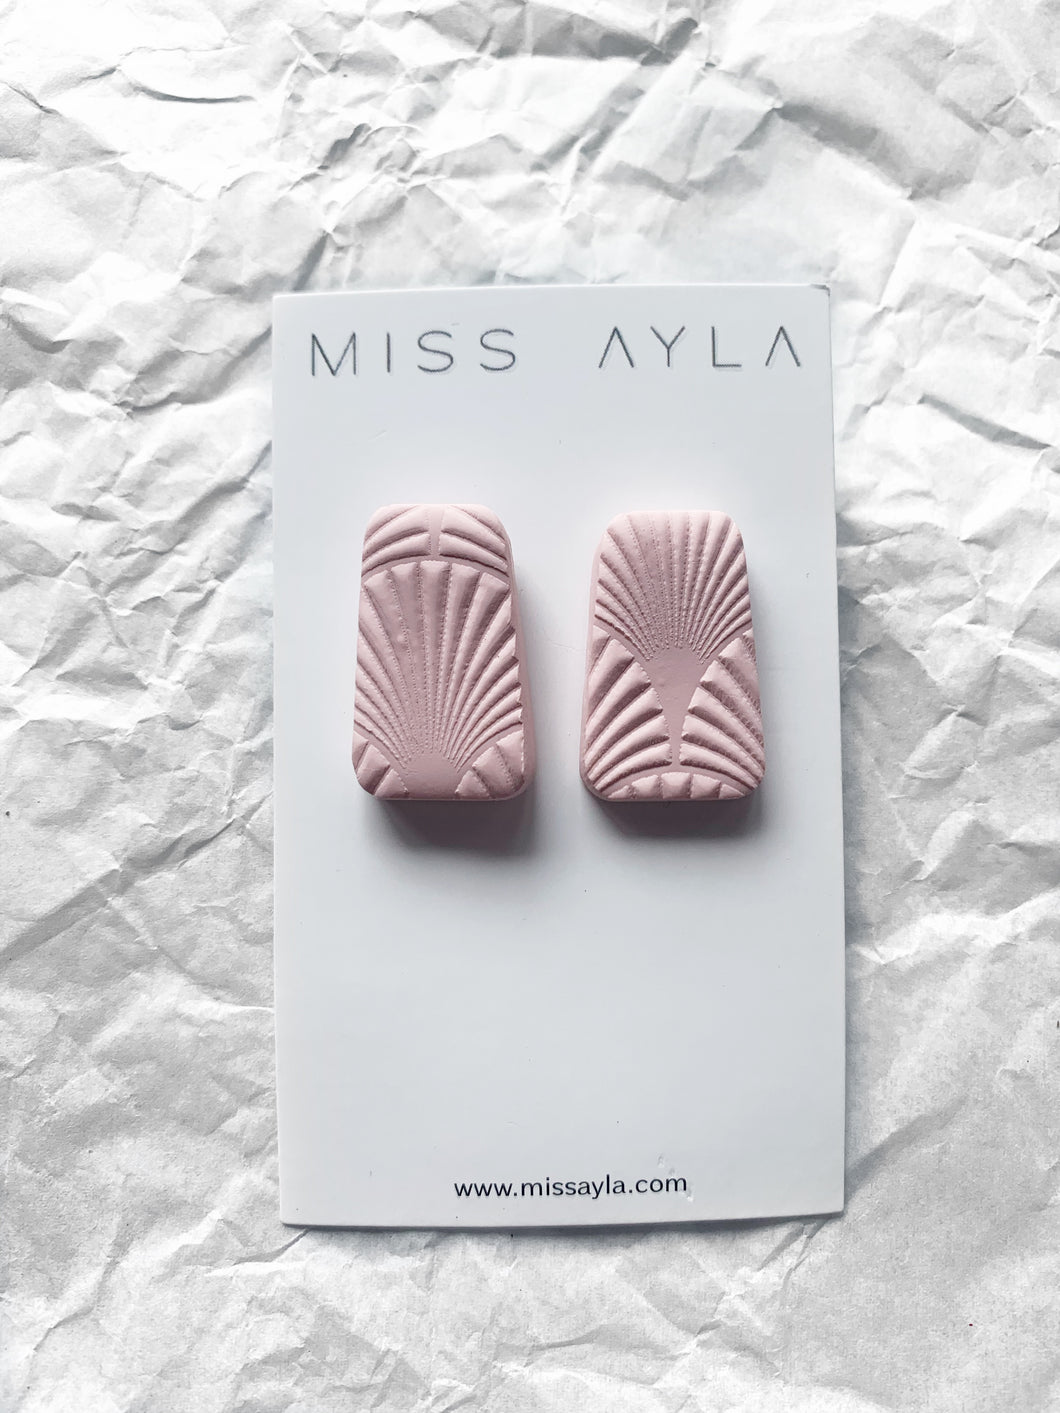 MISS AYLA PINK TEXTURED STUDS